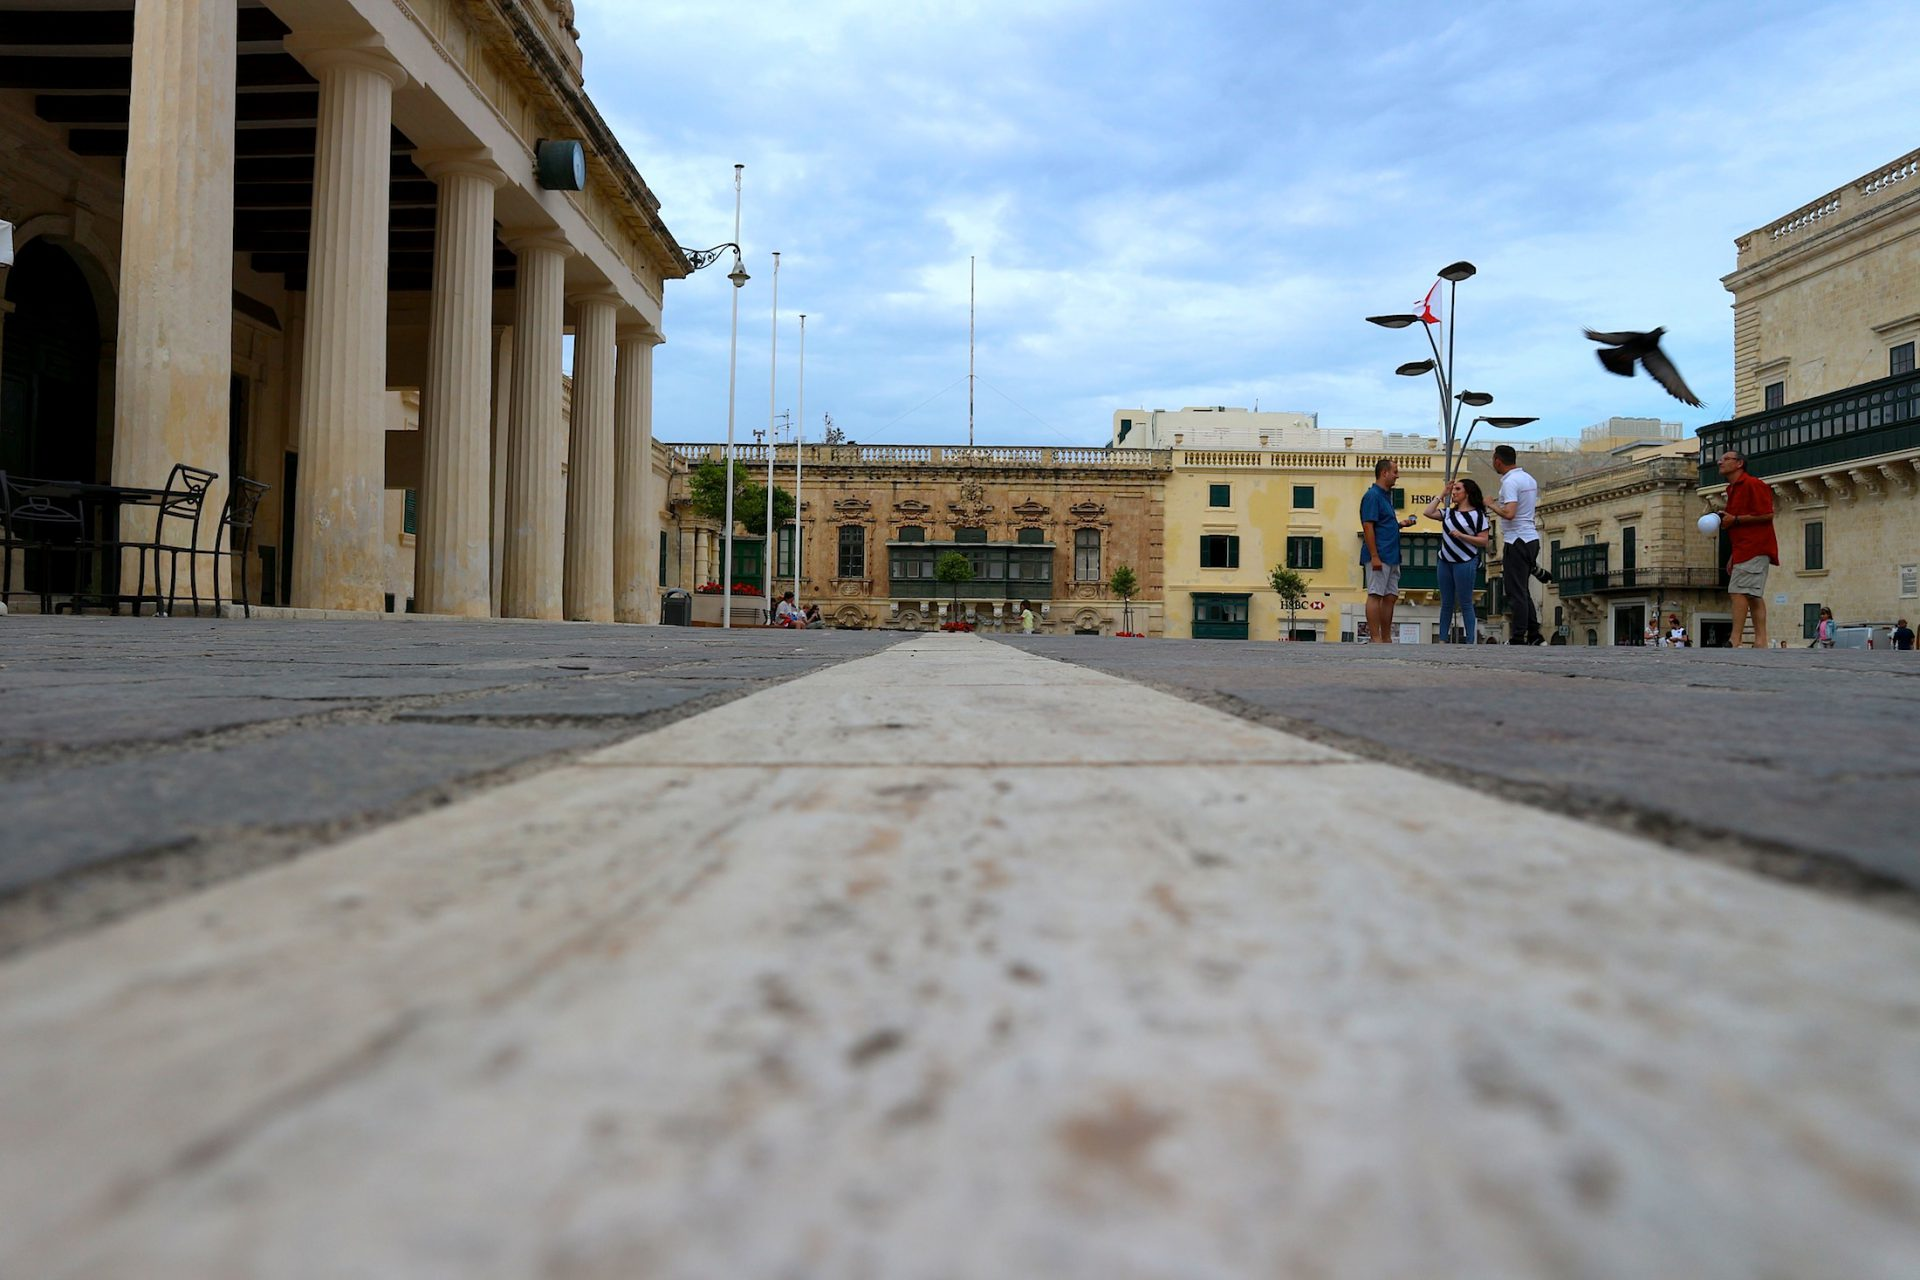 Platz der Republik, Valletta.